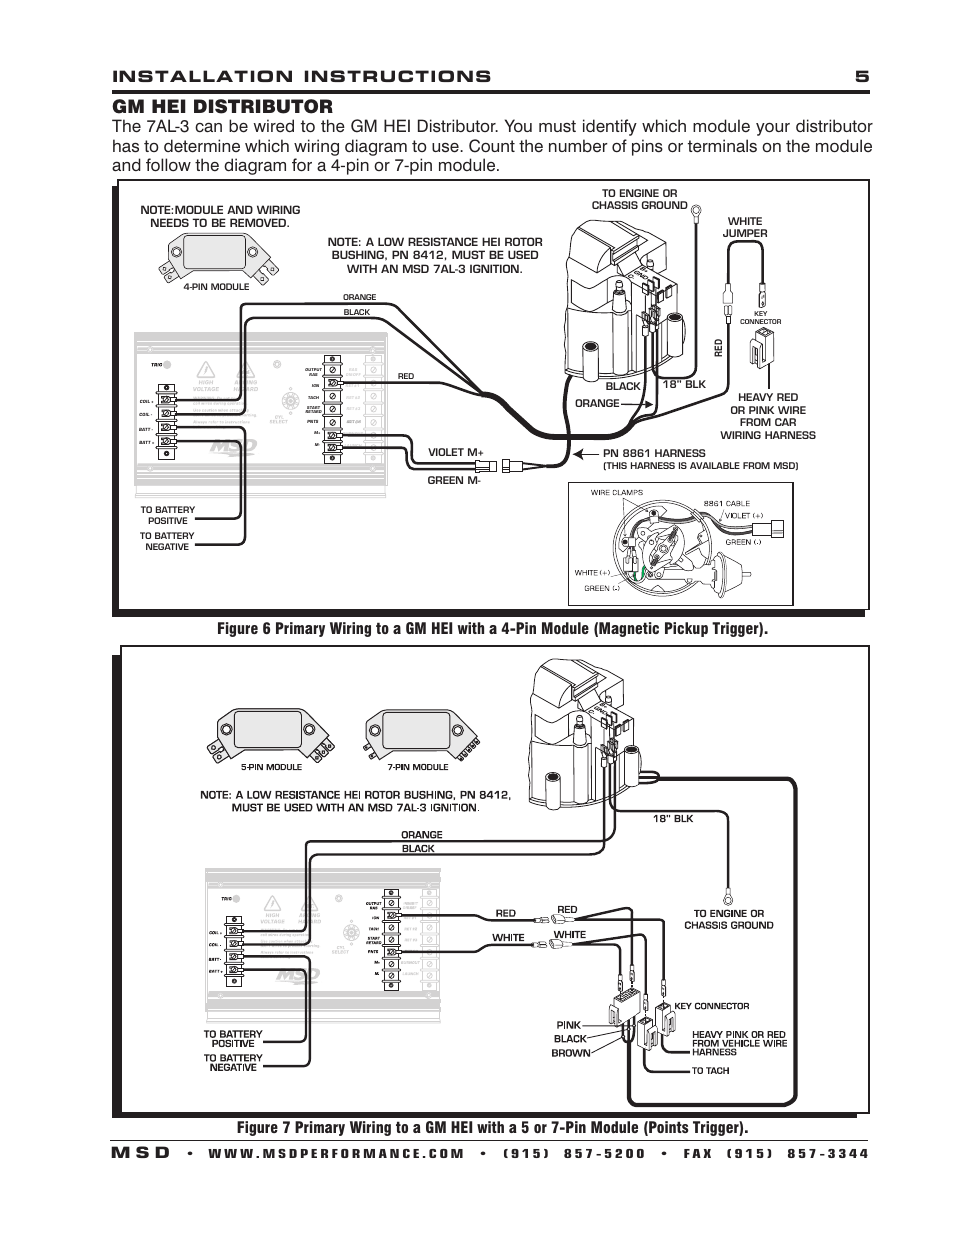 hei wiring diagram pictures of a volcano gm distributor, installation instructions 5 m s d   msd 7330 7al-3 ignition control ...